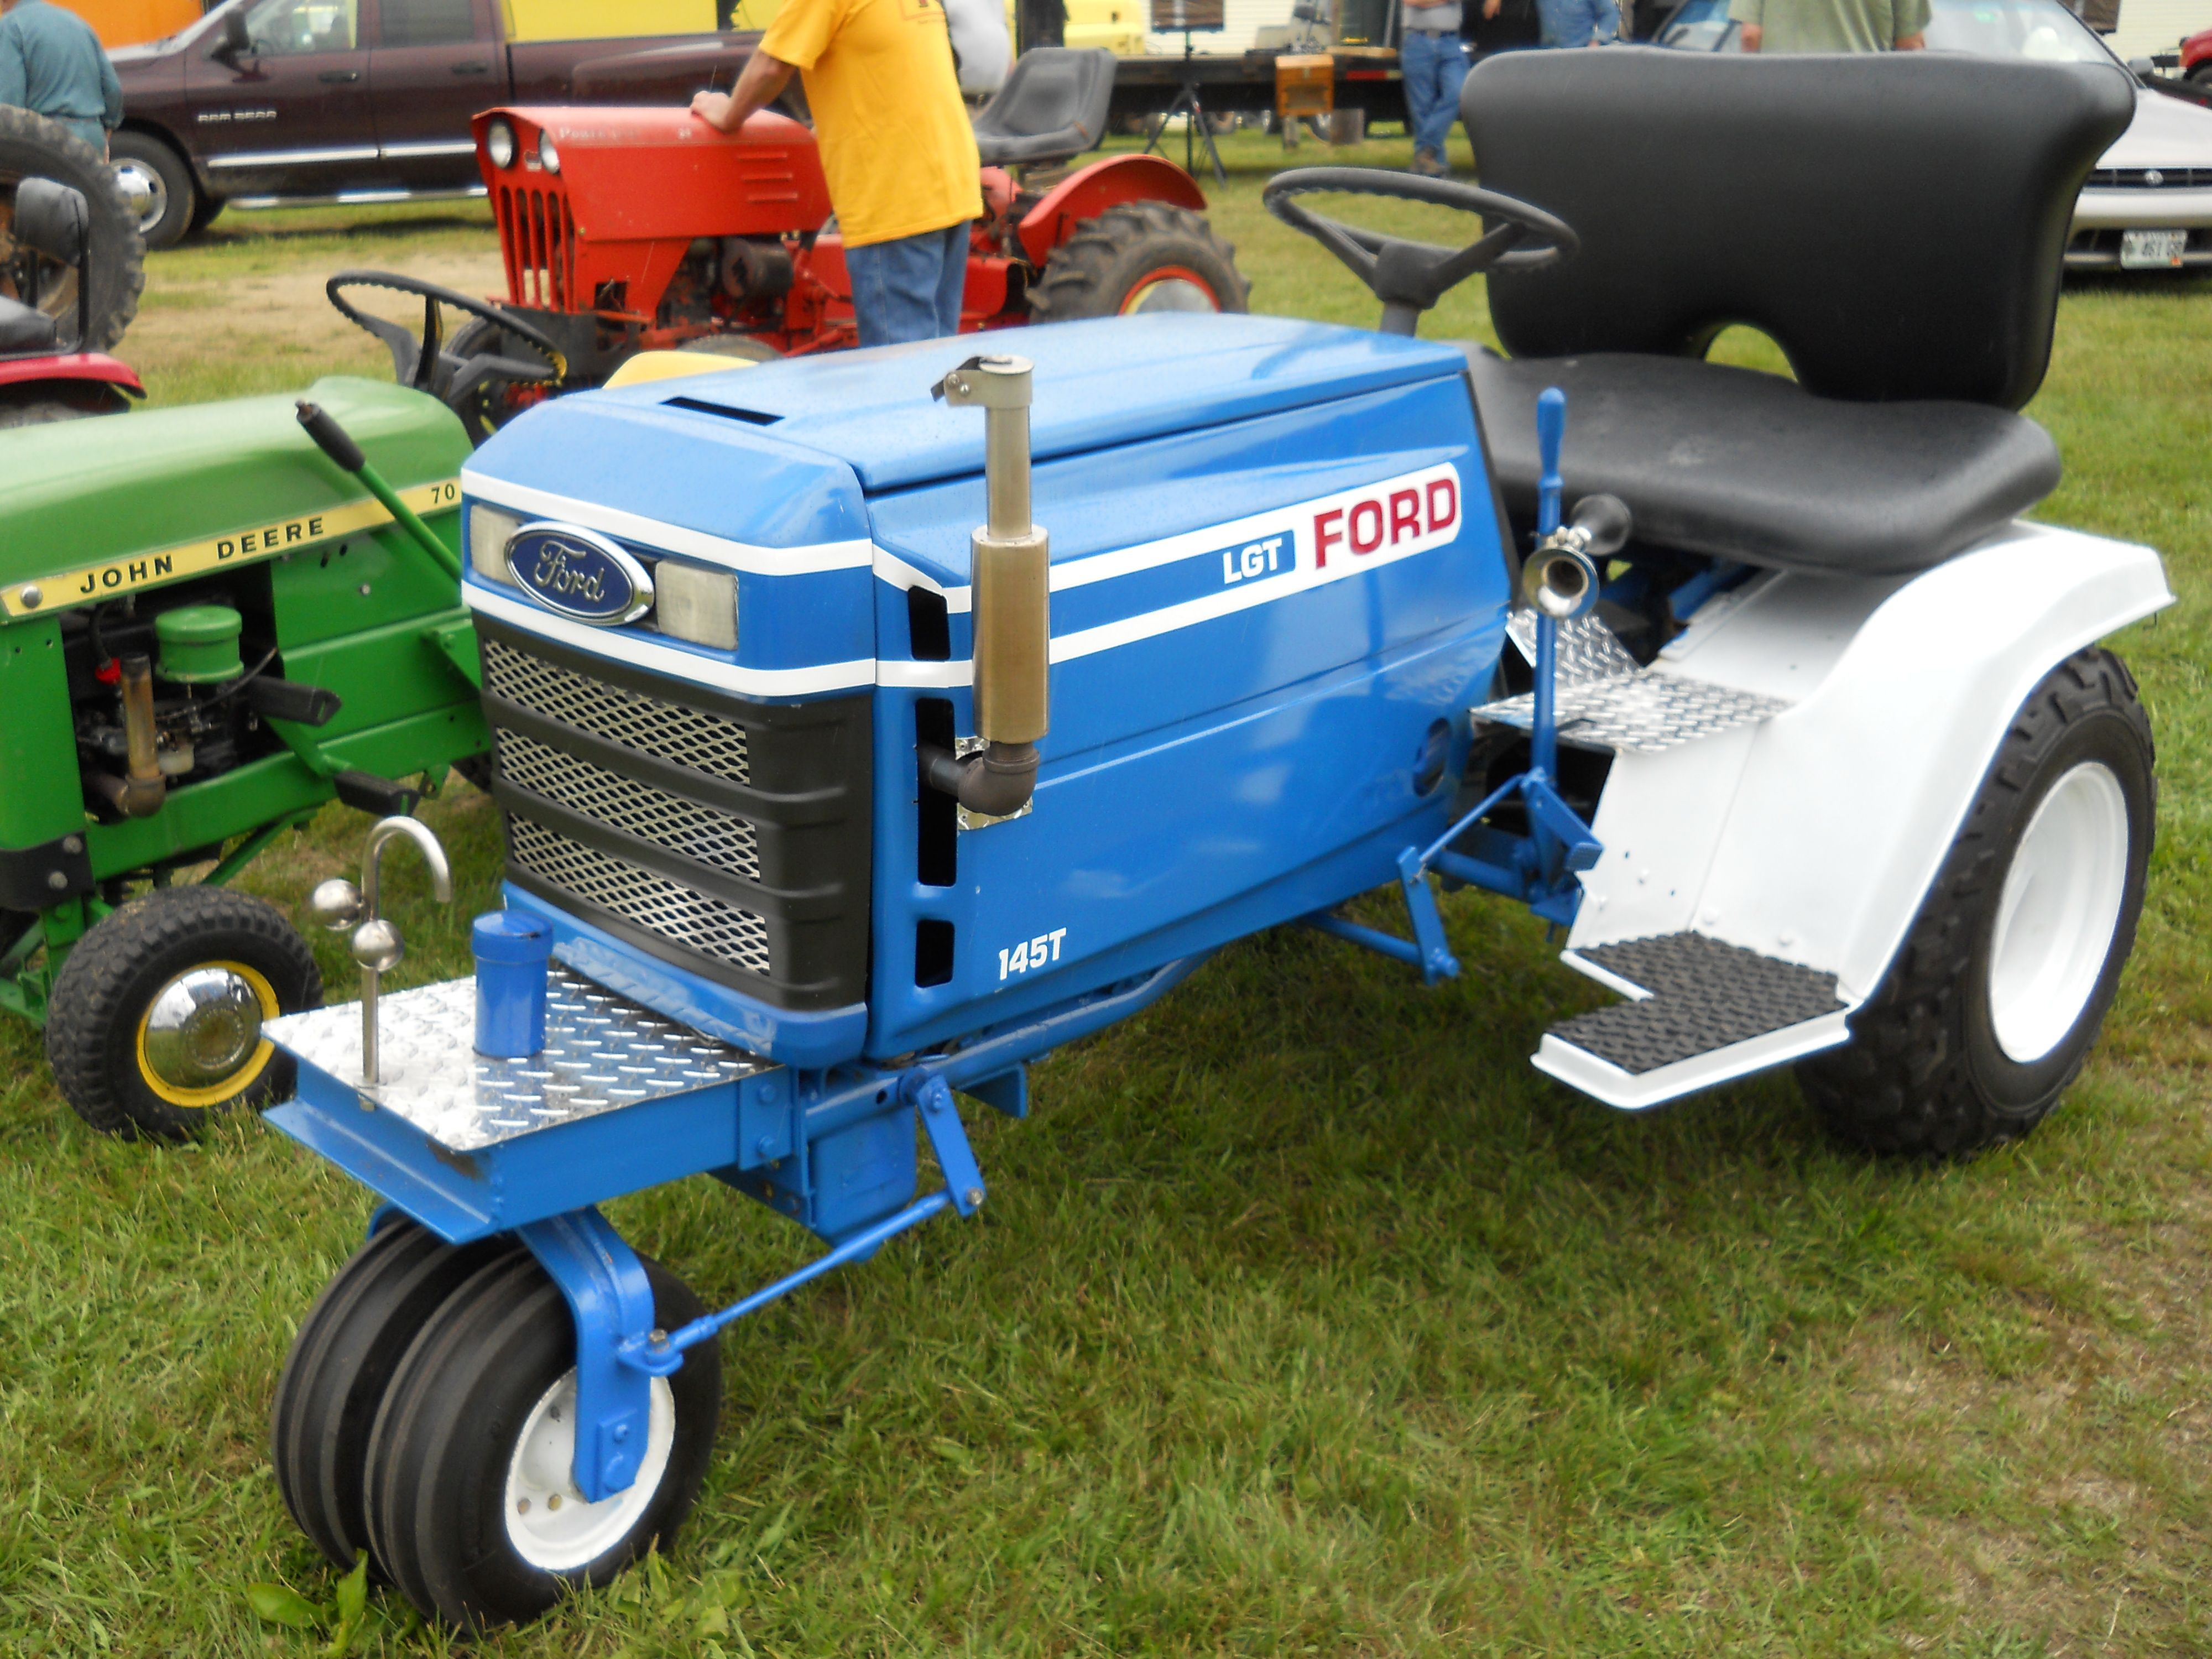 Ford lgt 145t tractor https wwwyoutubecom user for Ford garden tractor